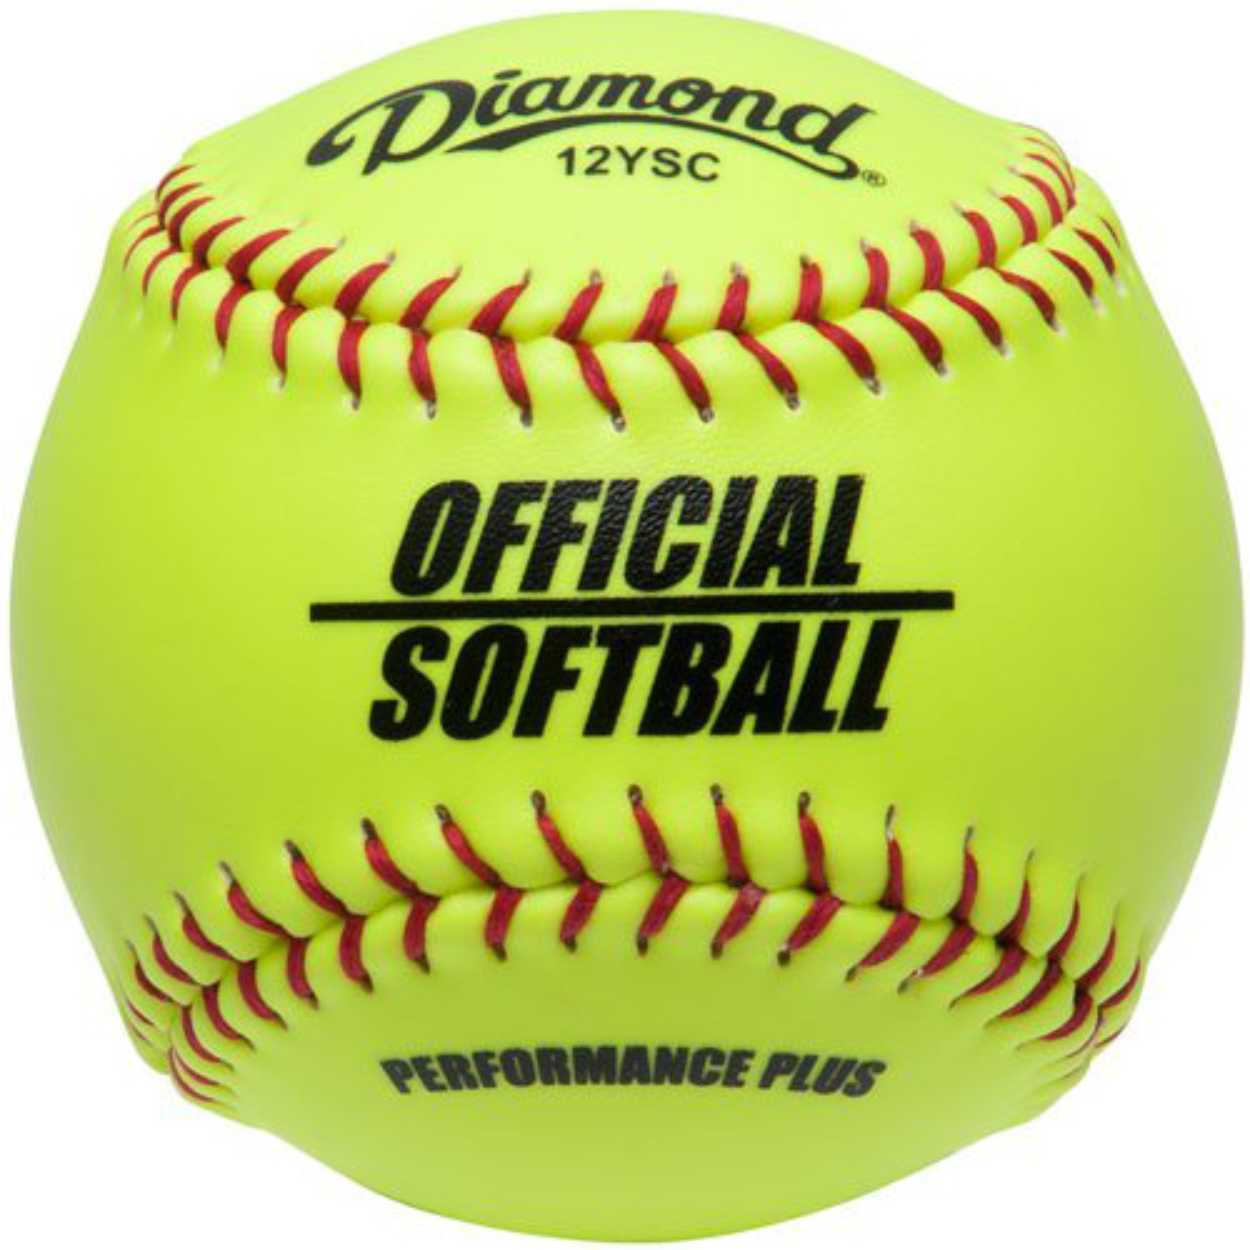 Diamond-Softball-BKT-Y-12YSC-1250x1250-3